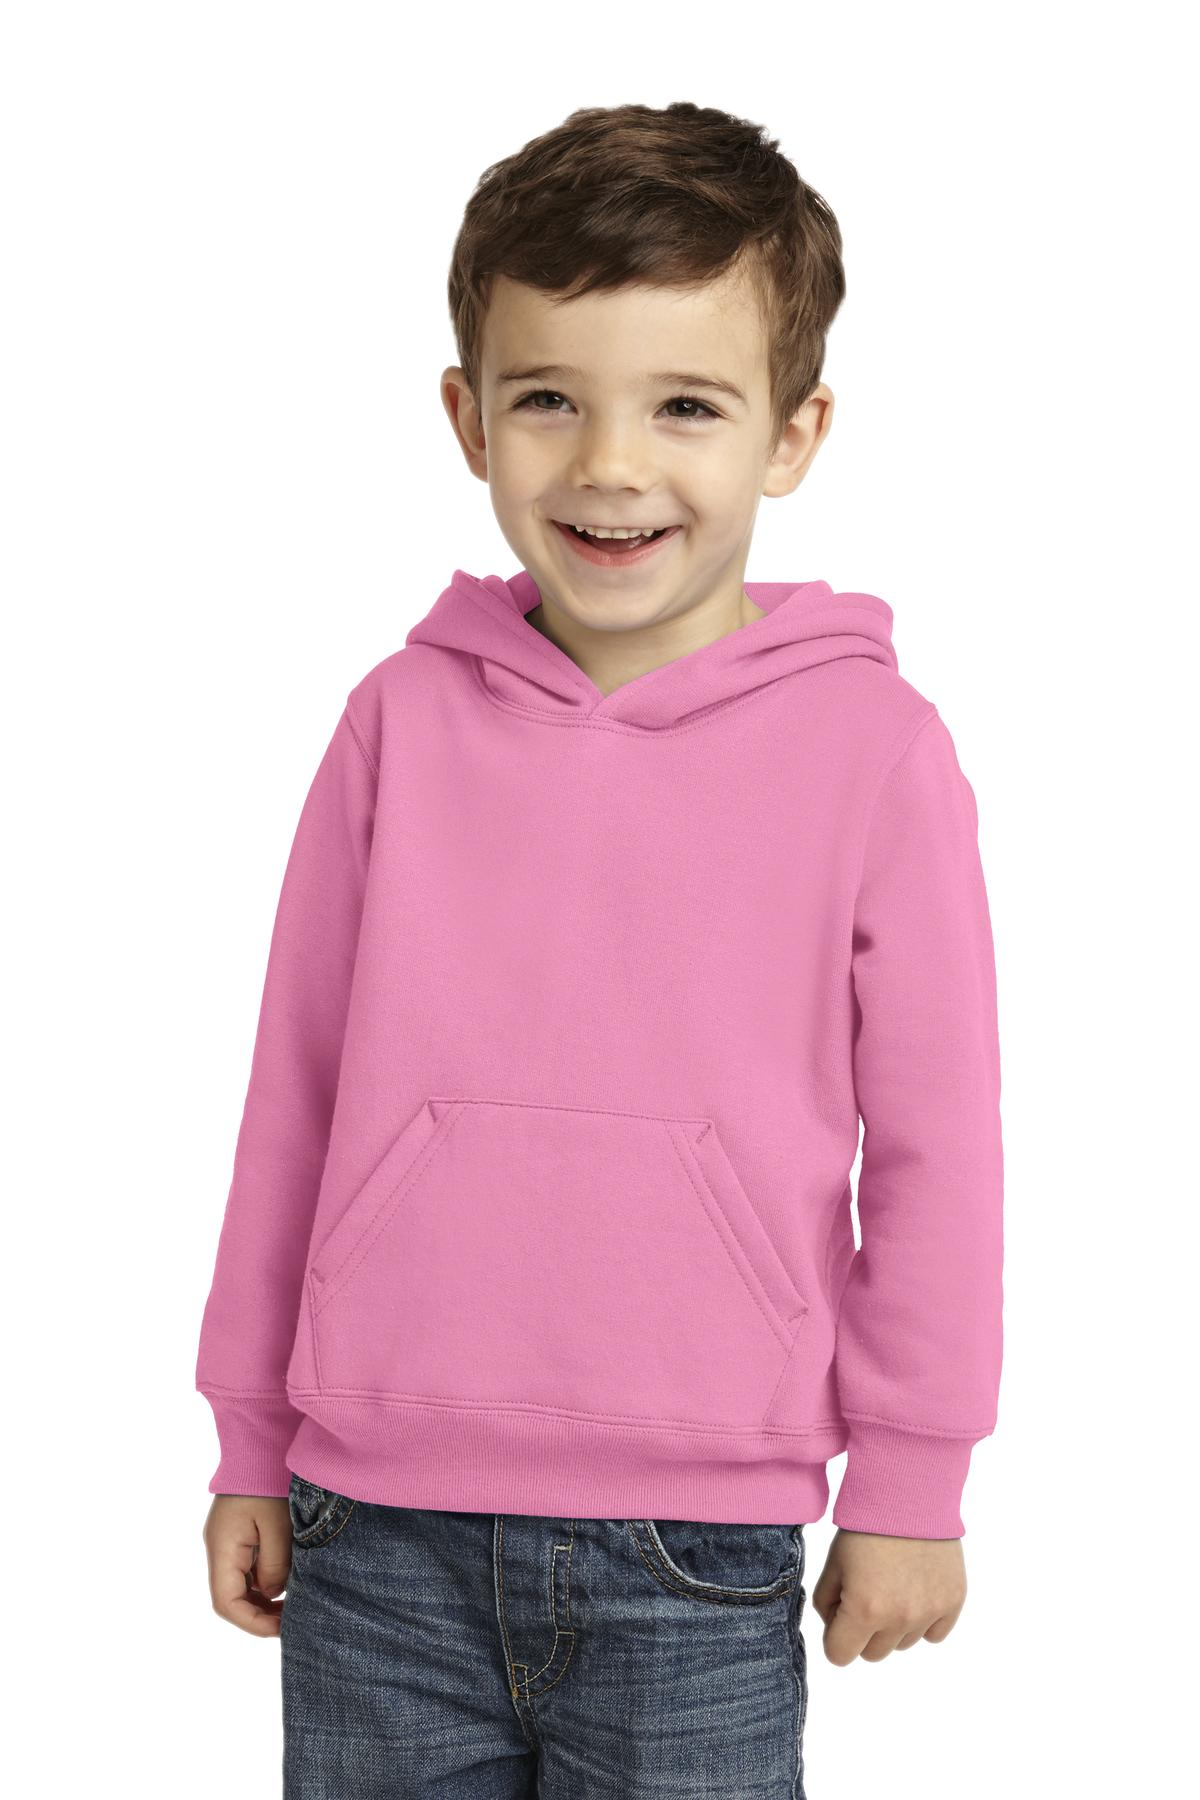 Port & Company ®  Toddler Core Fleece Pullover Hooded Sweatshirt. CAR78TH - Candy Pink